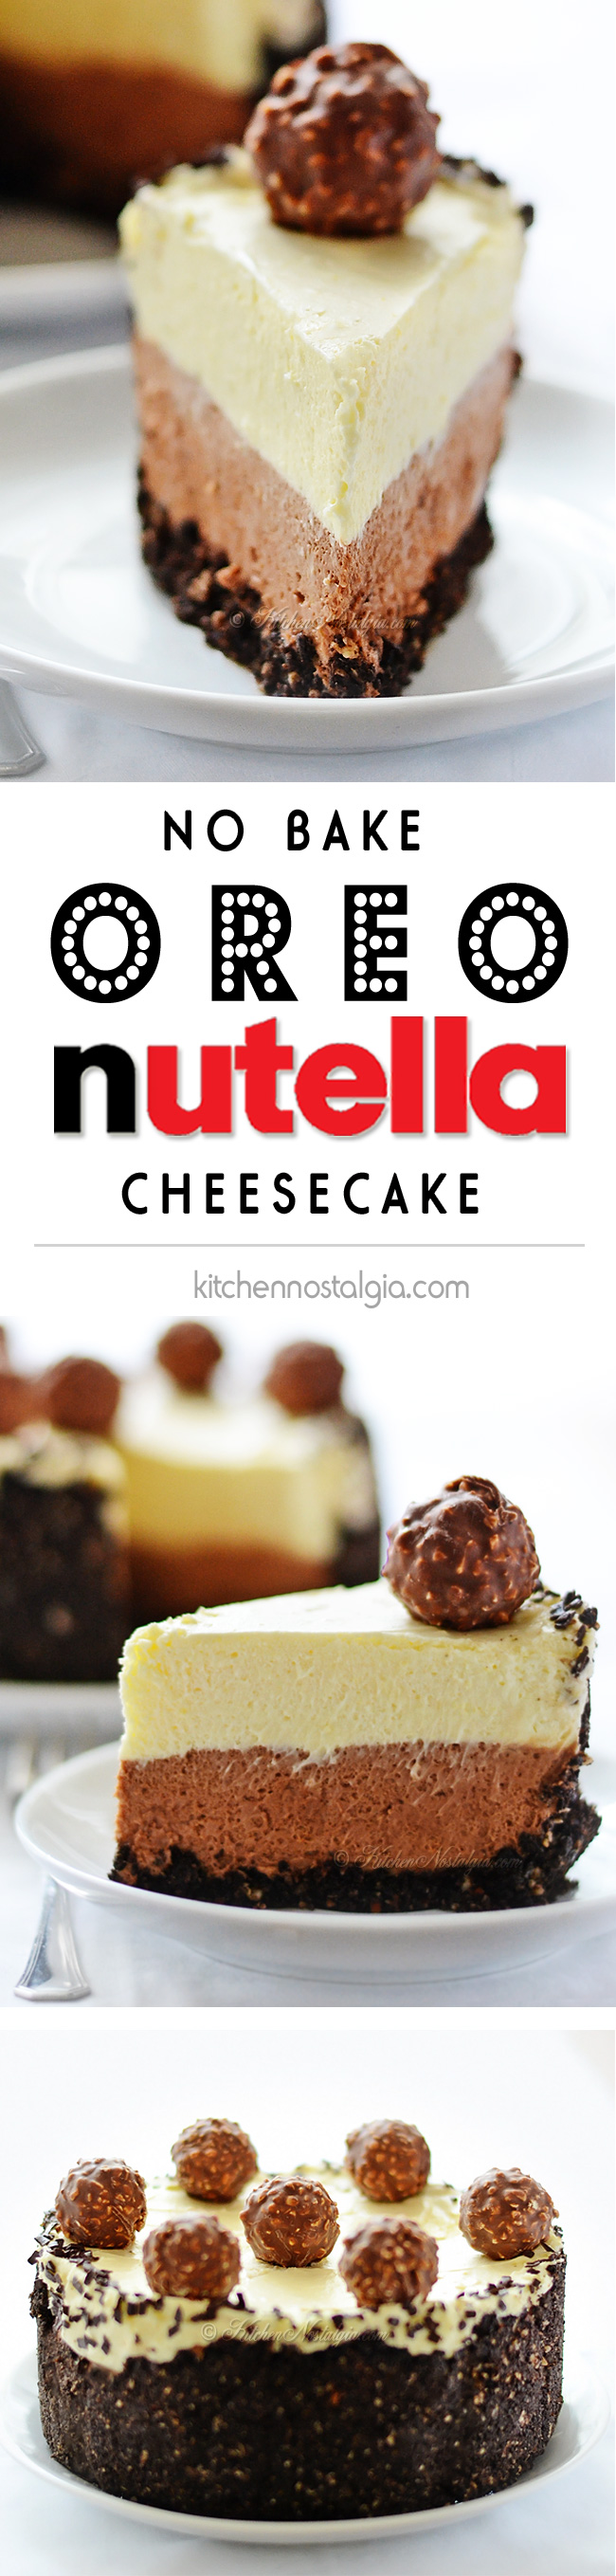 Nutella Oreo Cheesecake - kitchennostalgia.com